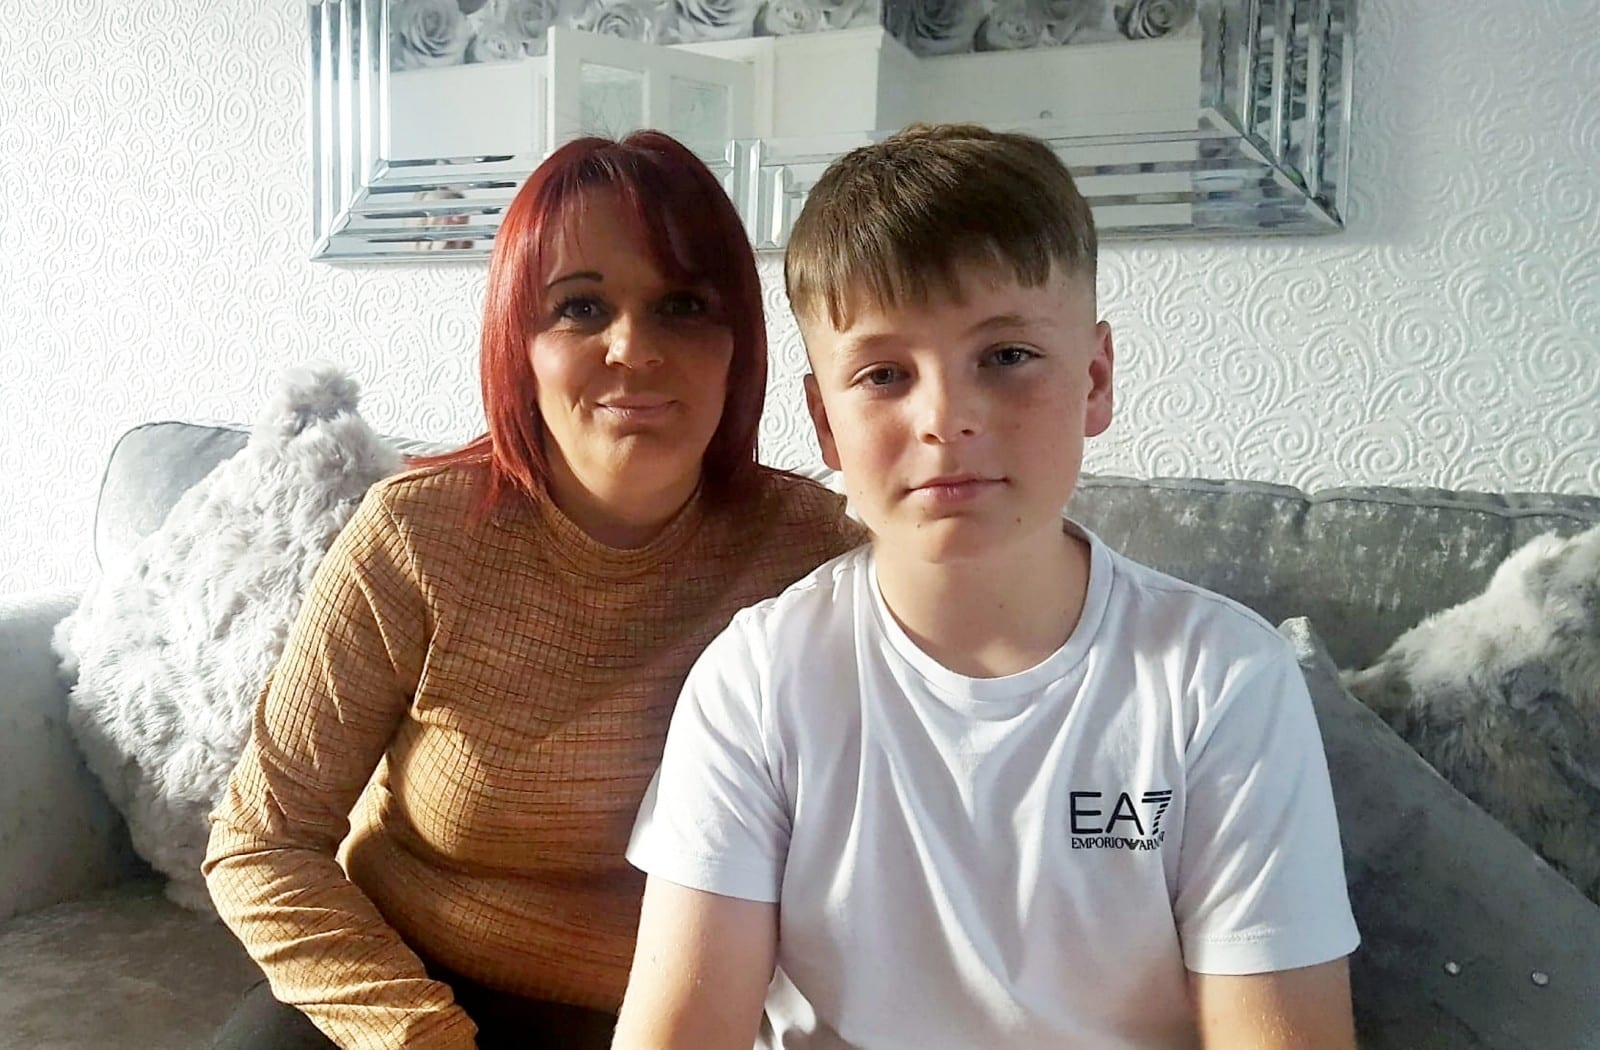 Mum's Fury As Lad, 12, Is Banned From Classes Because His Hair Is Too Short